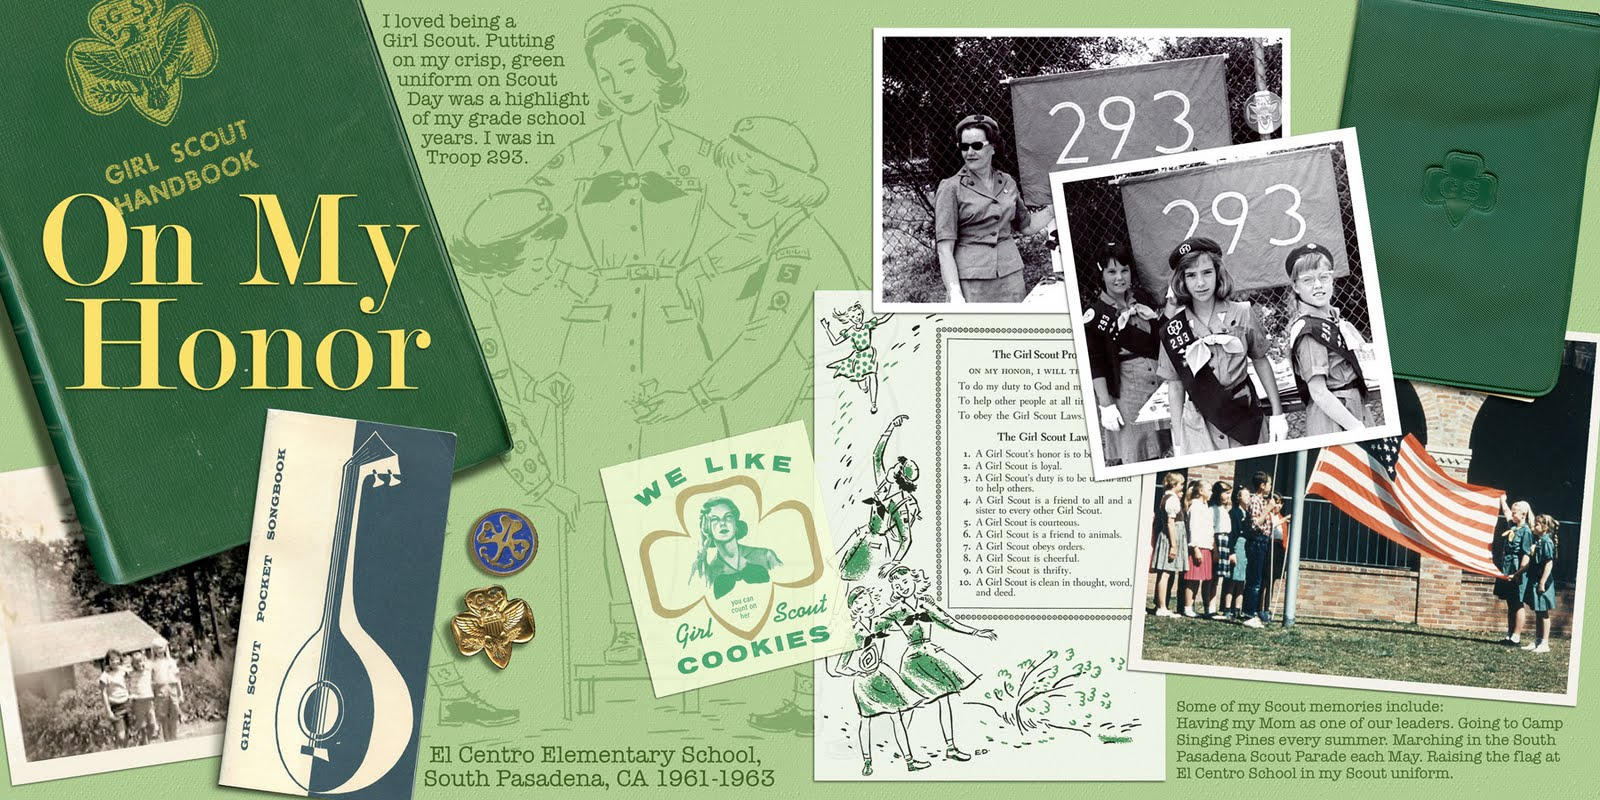 Girl scout scrapbook ideas - Girl Scout Senior Vest Sash Insignia Placement Girl Scout Insignia Placement Pinterest Vests Girl Scouts And We